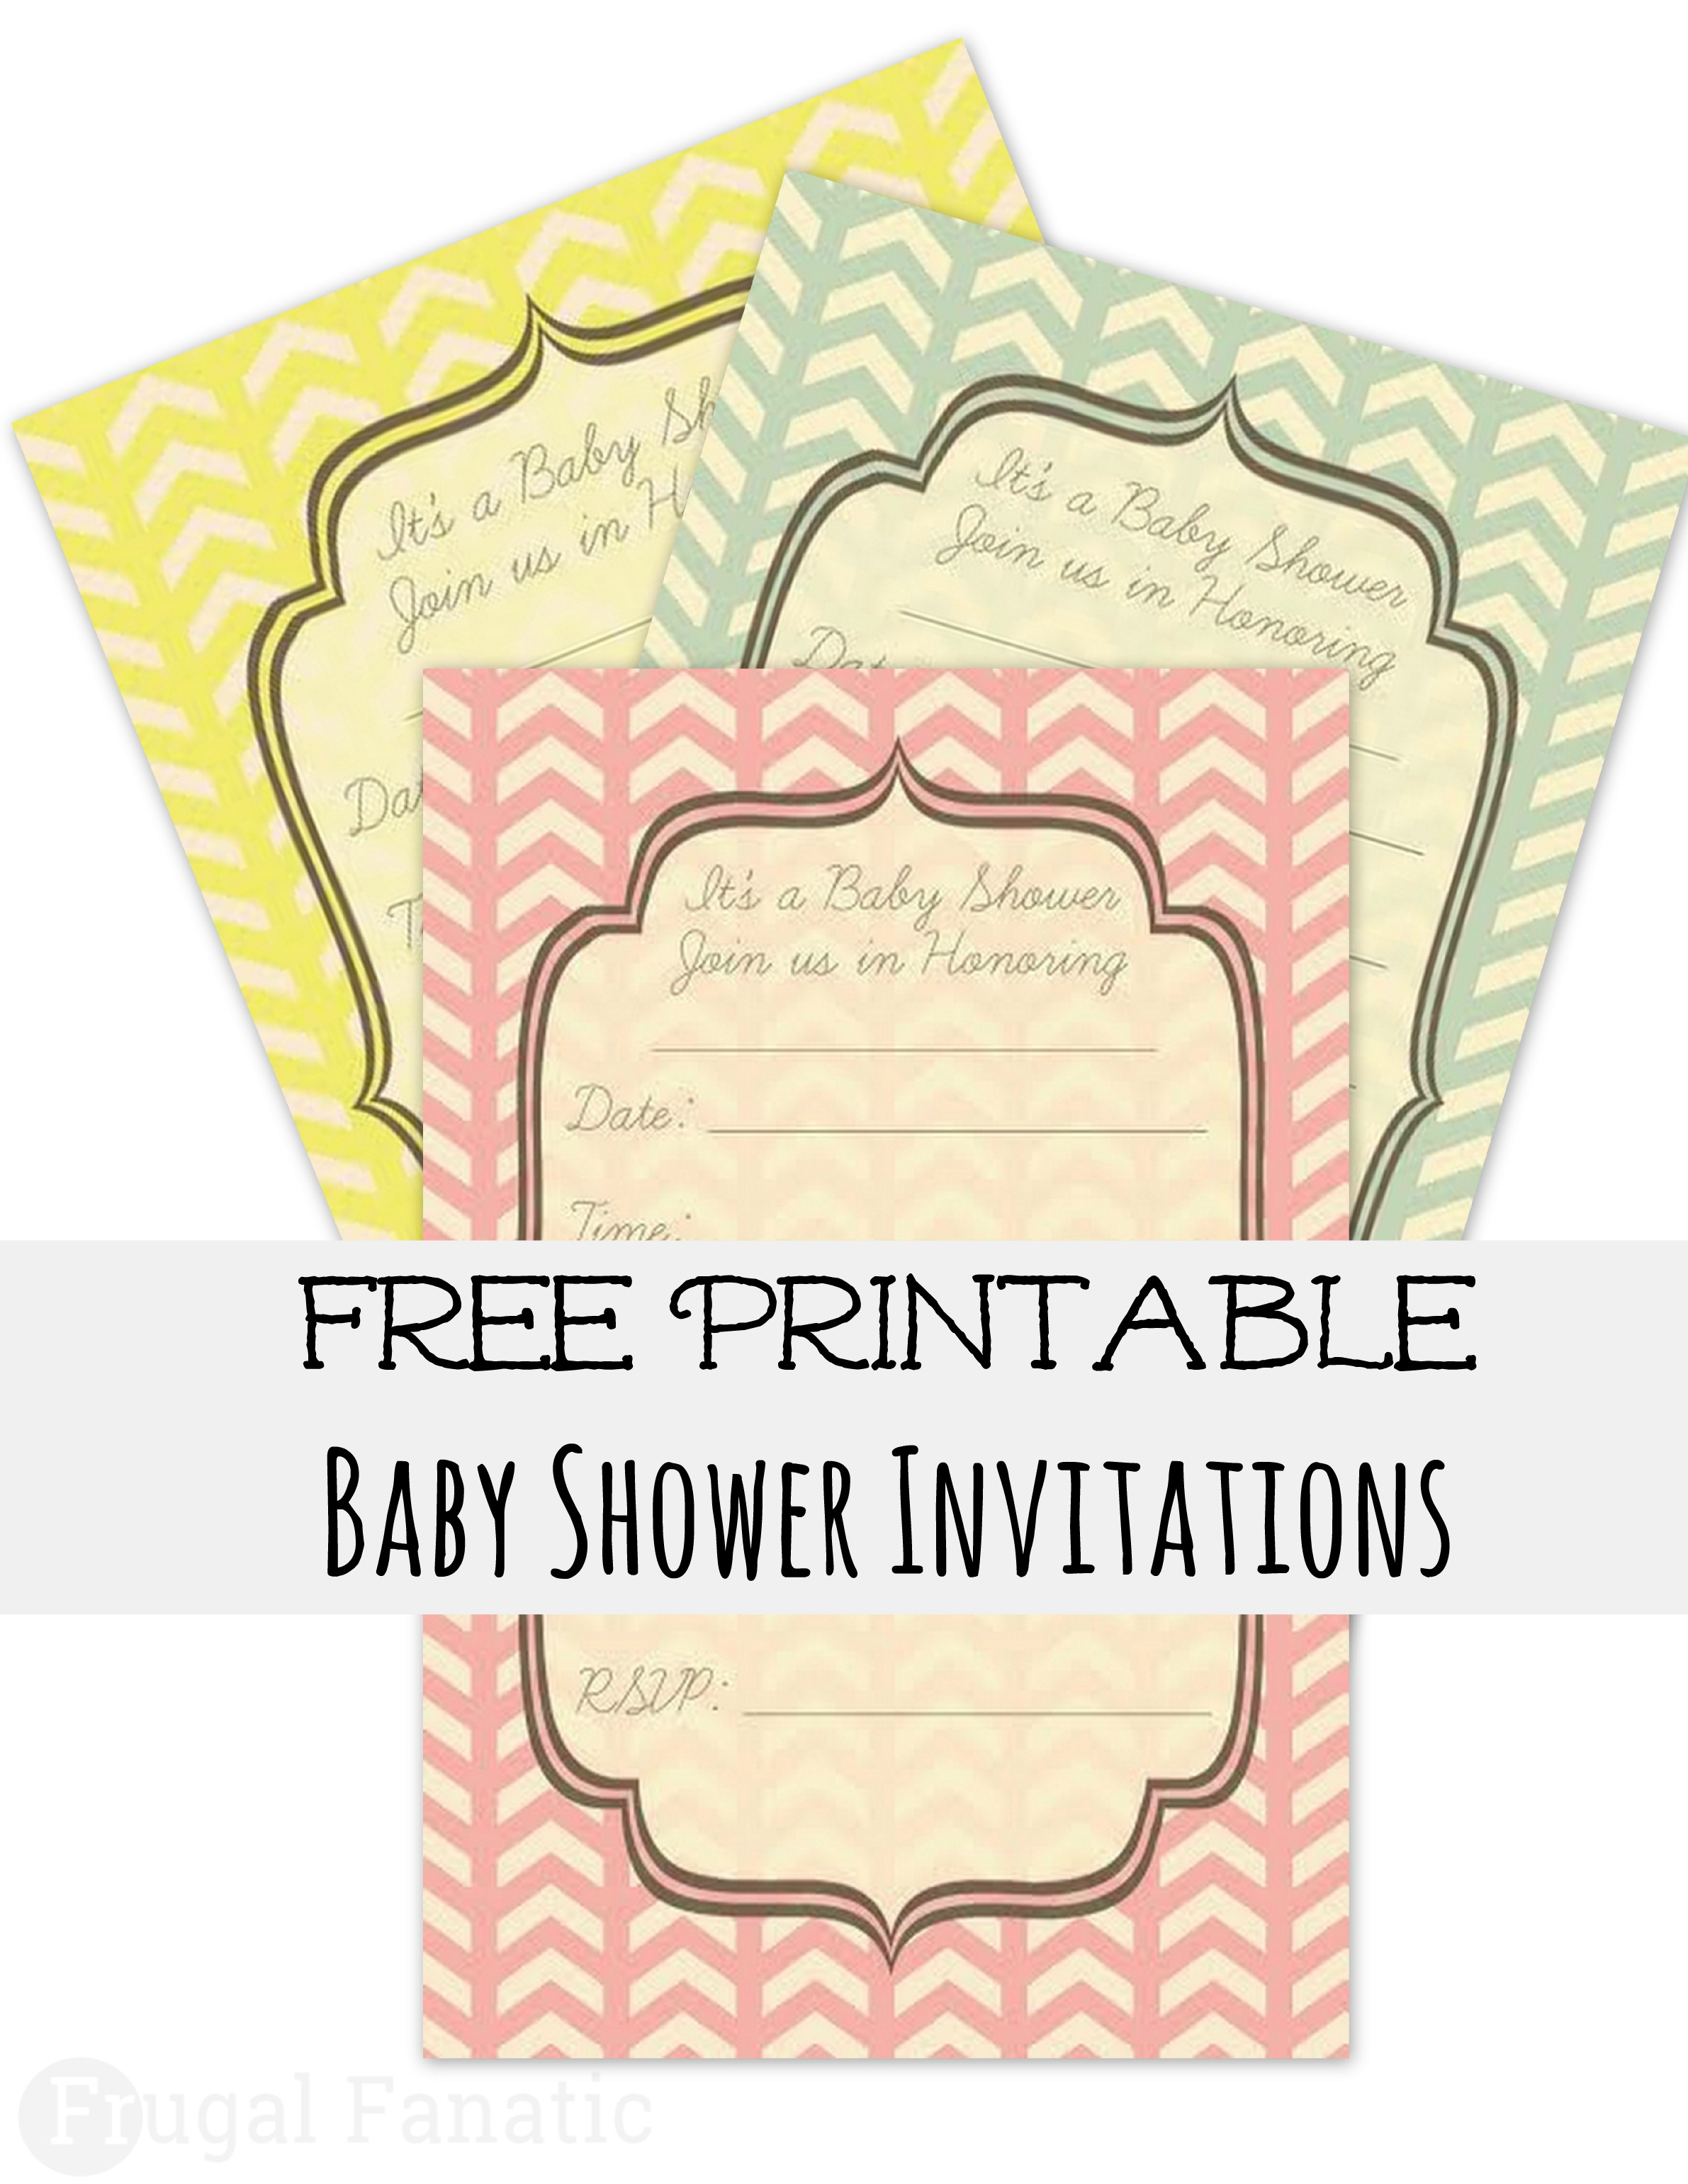 Glamorous Free Baby Shower Invites - Frugal Fanatic regarding Free Baby Shower Invitations